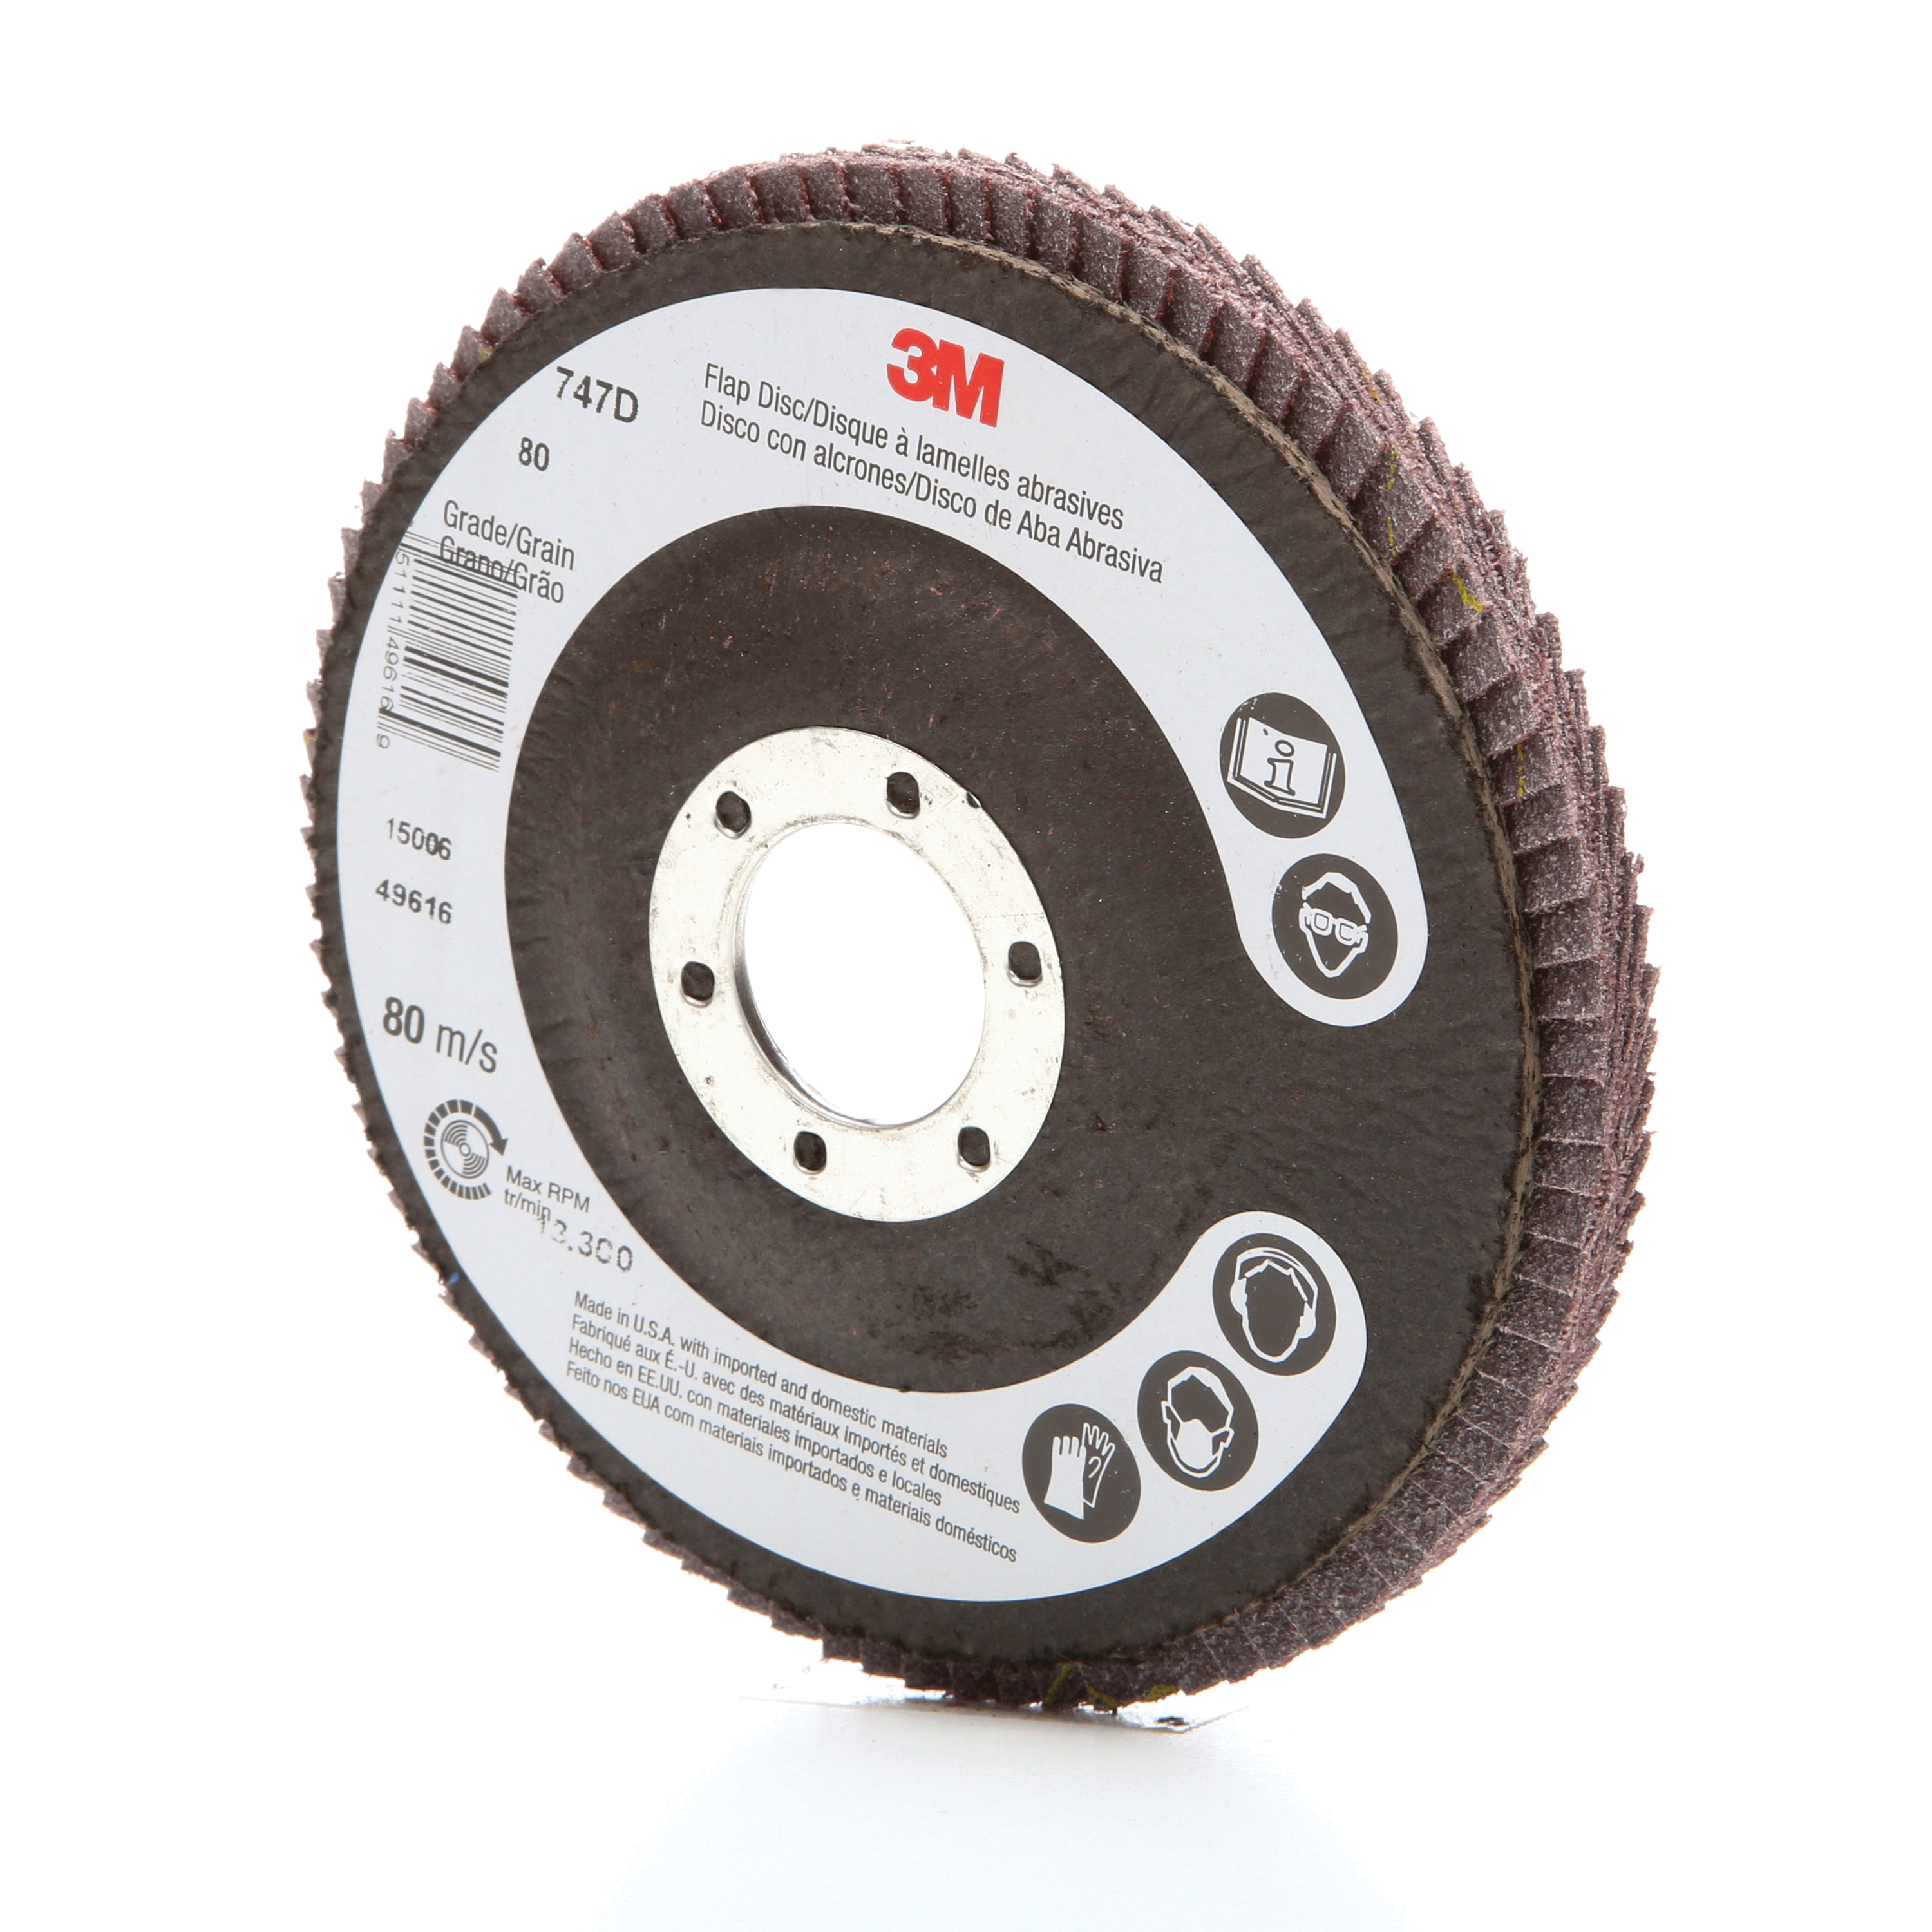 3M™ 051111-49616 Close Quick-Change Coated Abrasive Flap Disc, 4-1/2 in Dia, 7/8 in Center Hole, 80 Grit, Medium Grade, Ceramic Abrasive, Type 27 Disc